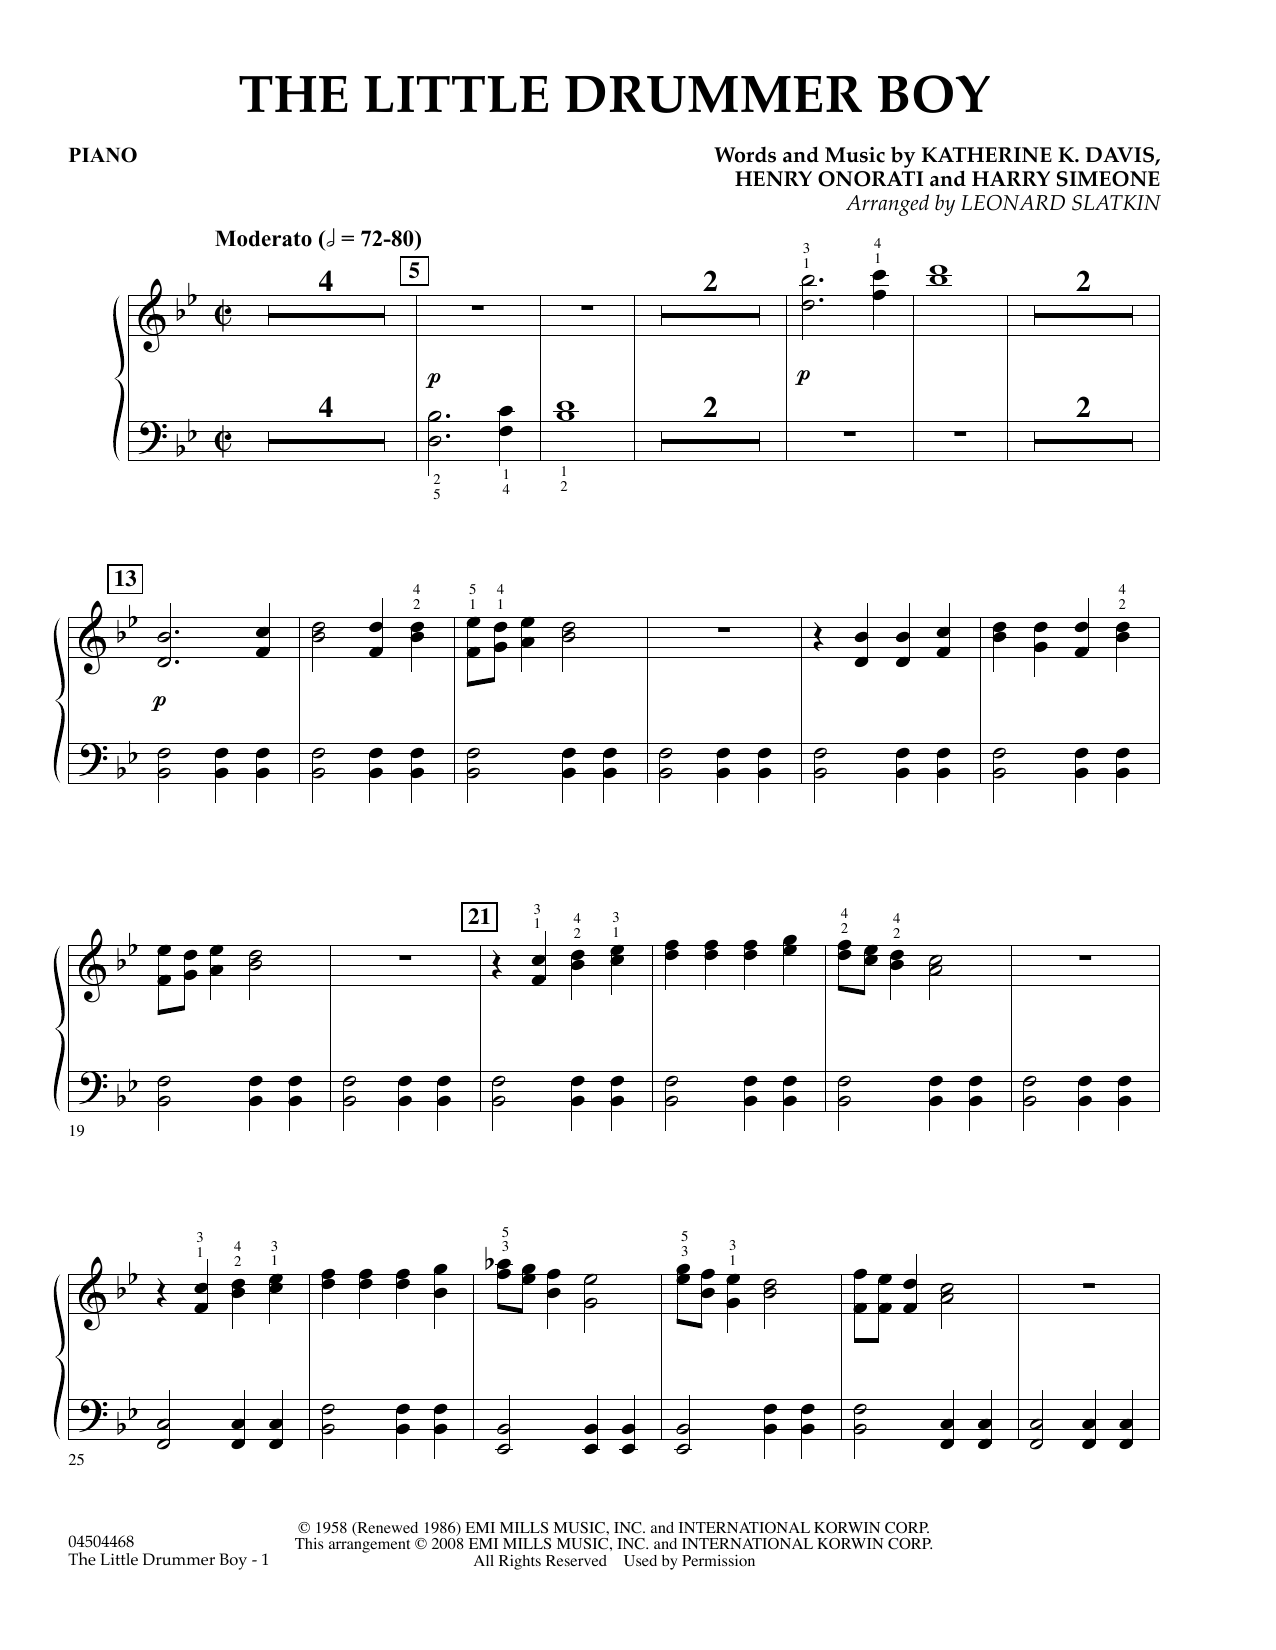 The Little Drummer Boy - Piano Partituras Digitales